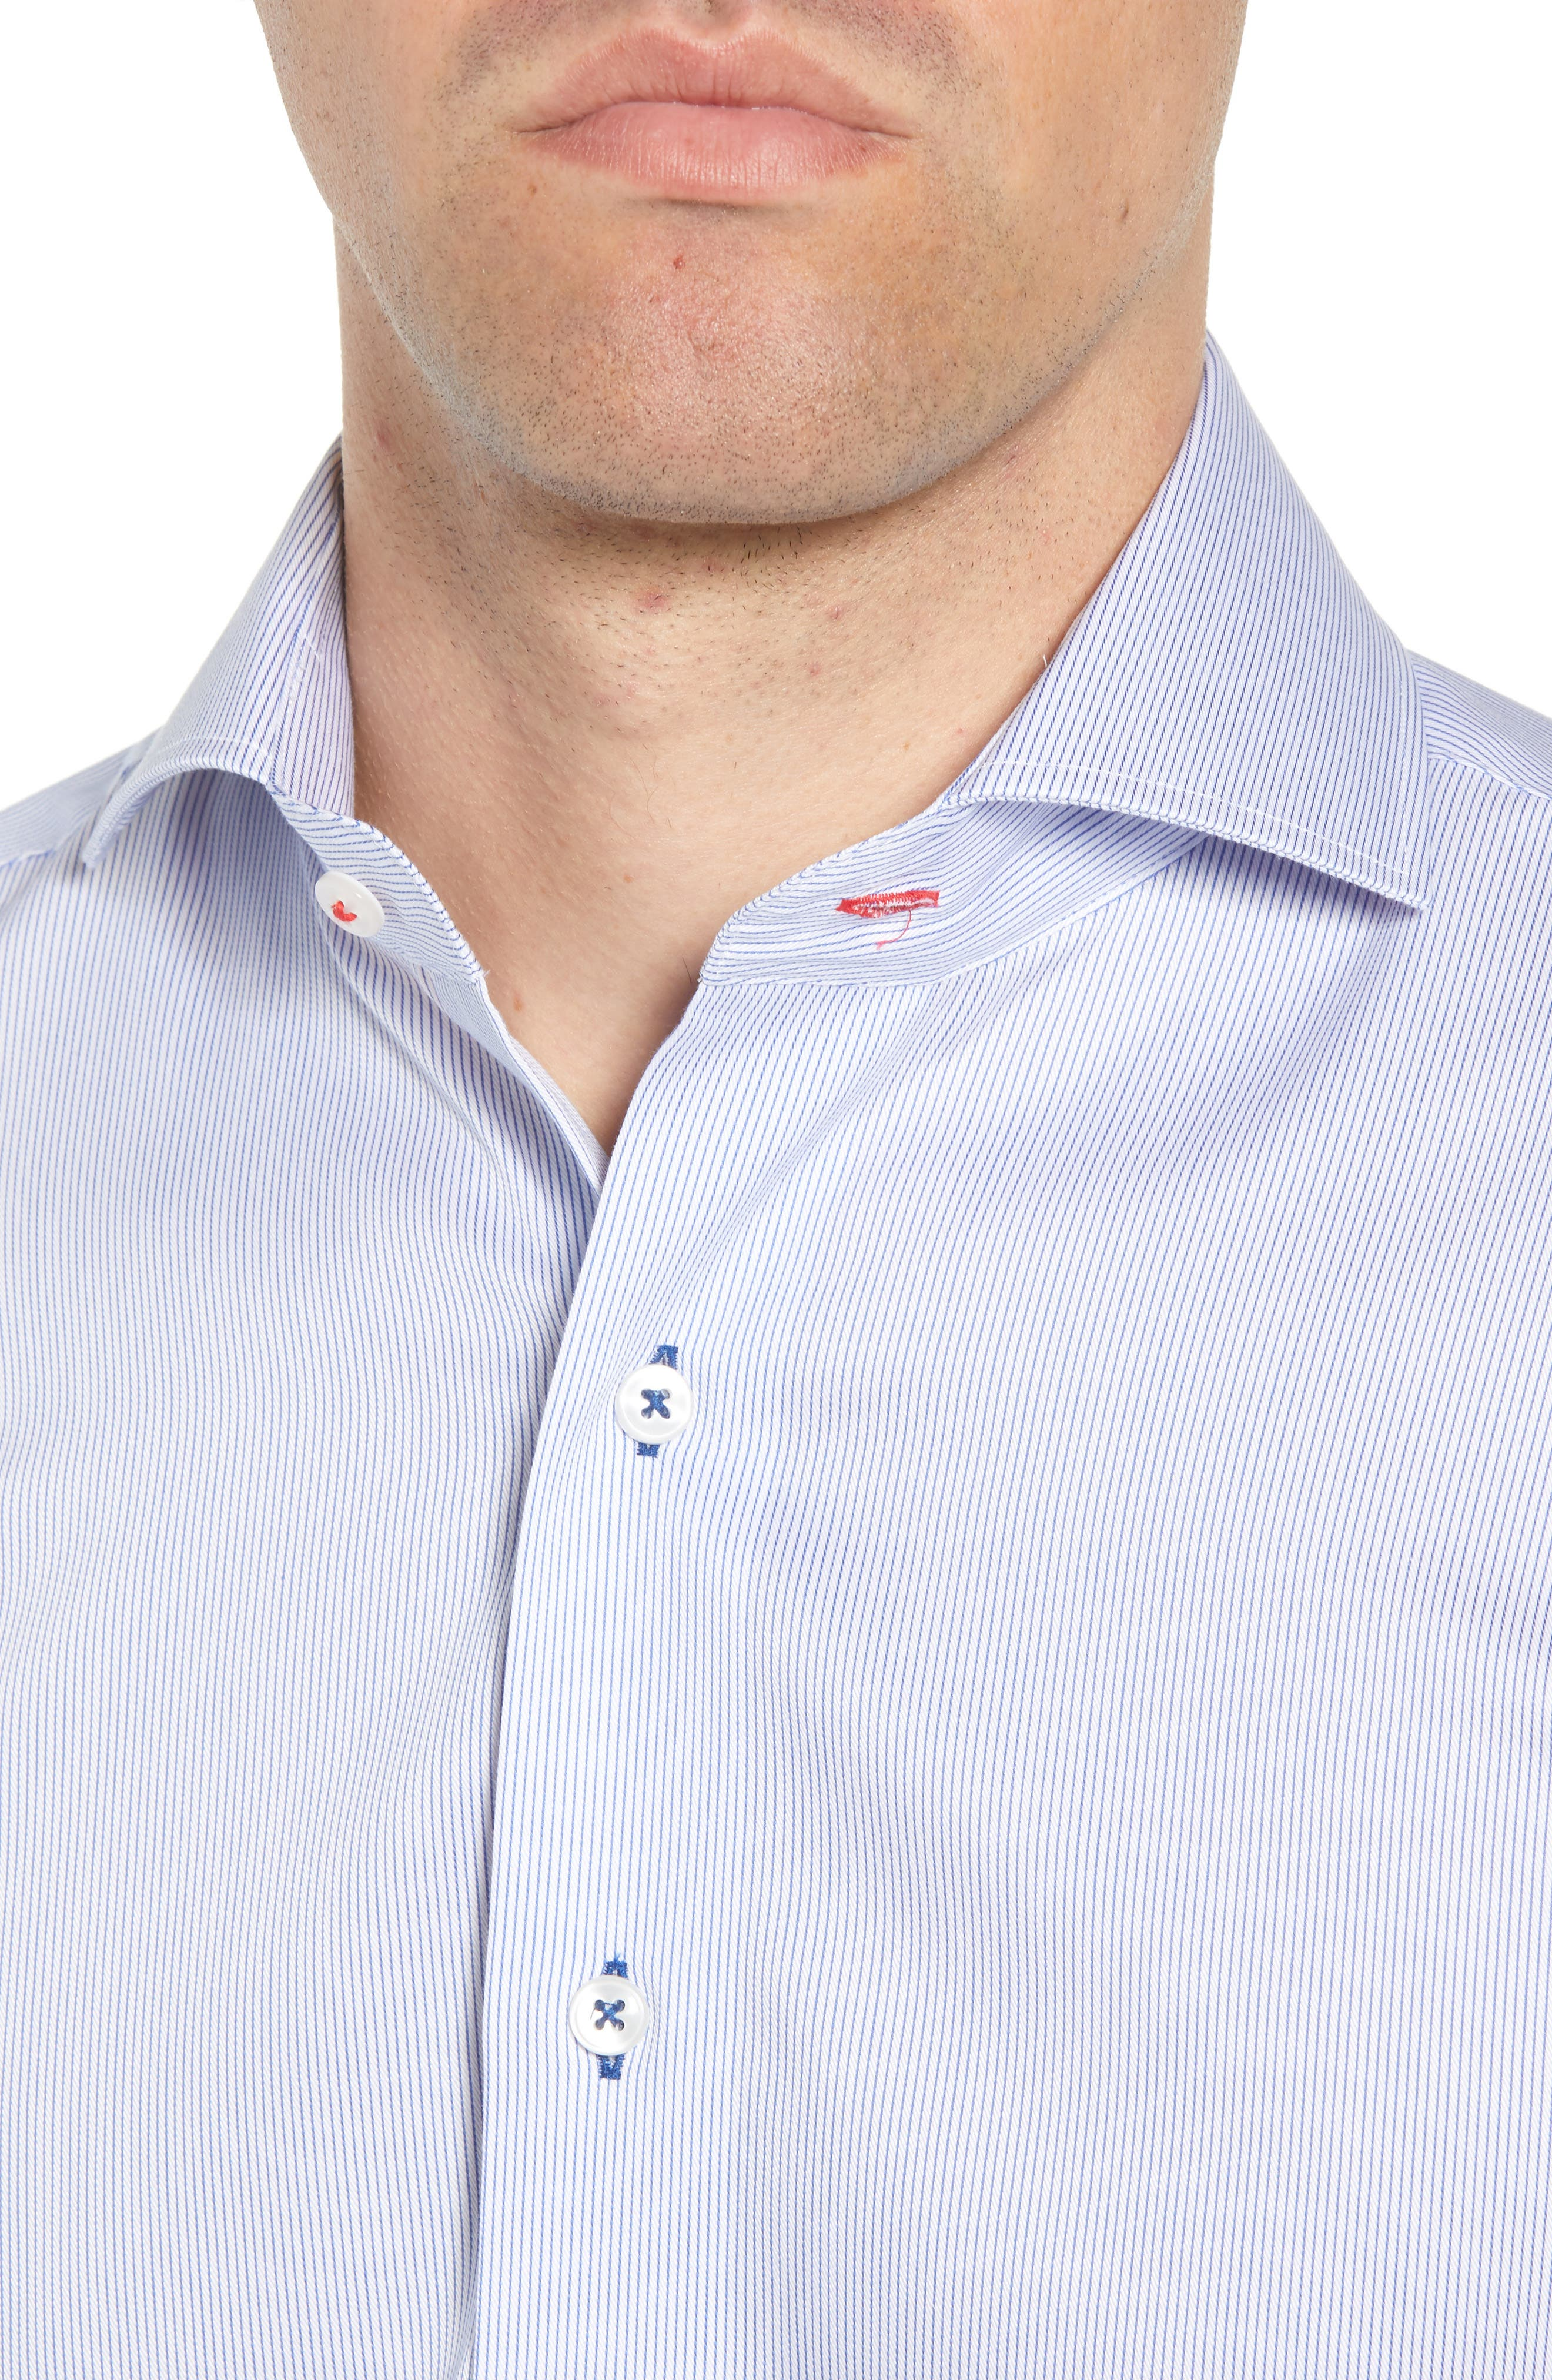 Trim Fit Stripe Dress Shirt,                             Alternate thumbnail 2, color,                             400